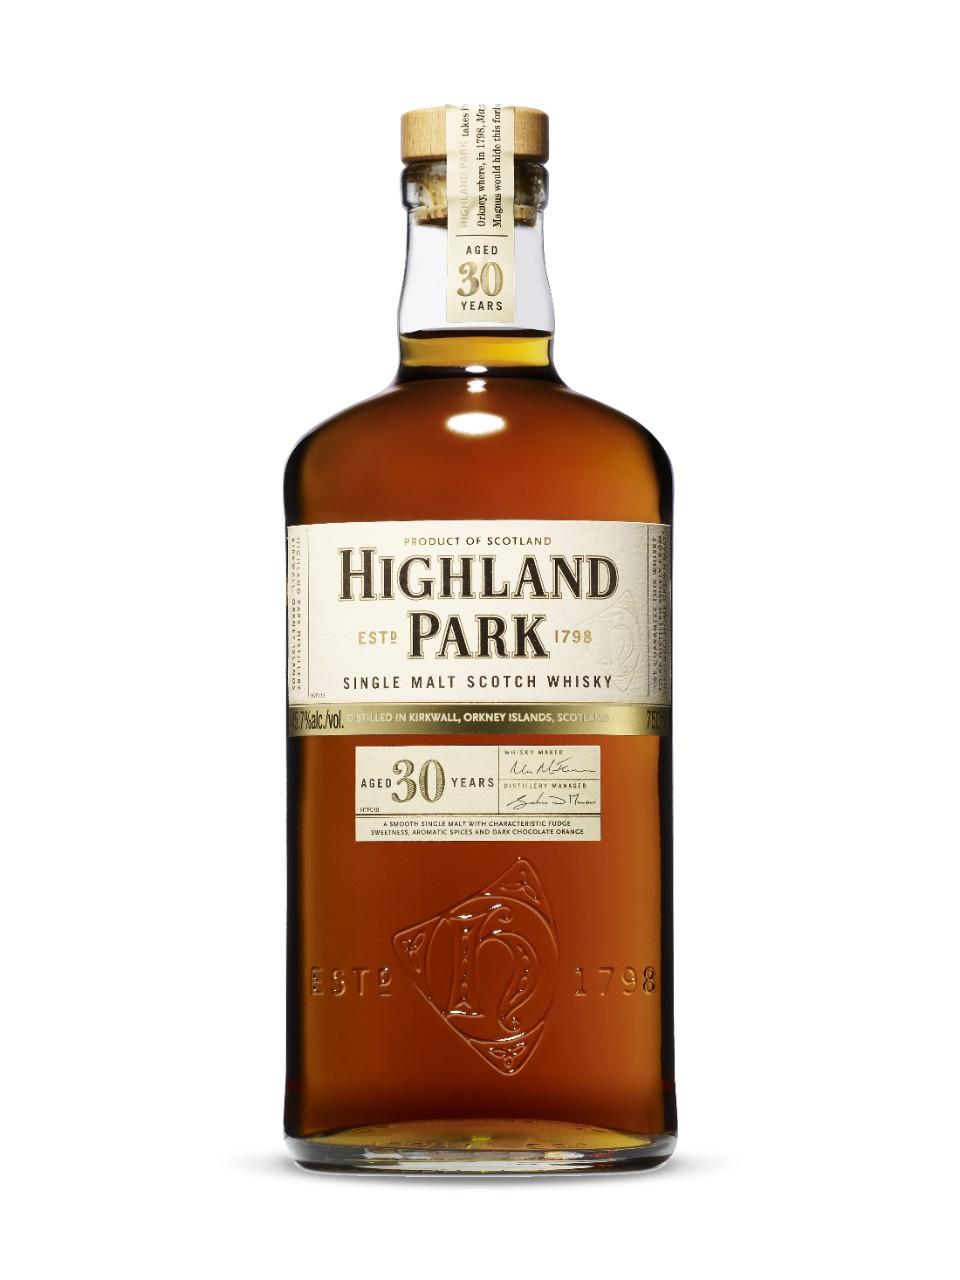 Highland Park 30-Year-Old Orkney Islands Single Malt Scotch Whisky